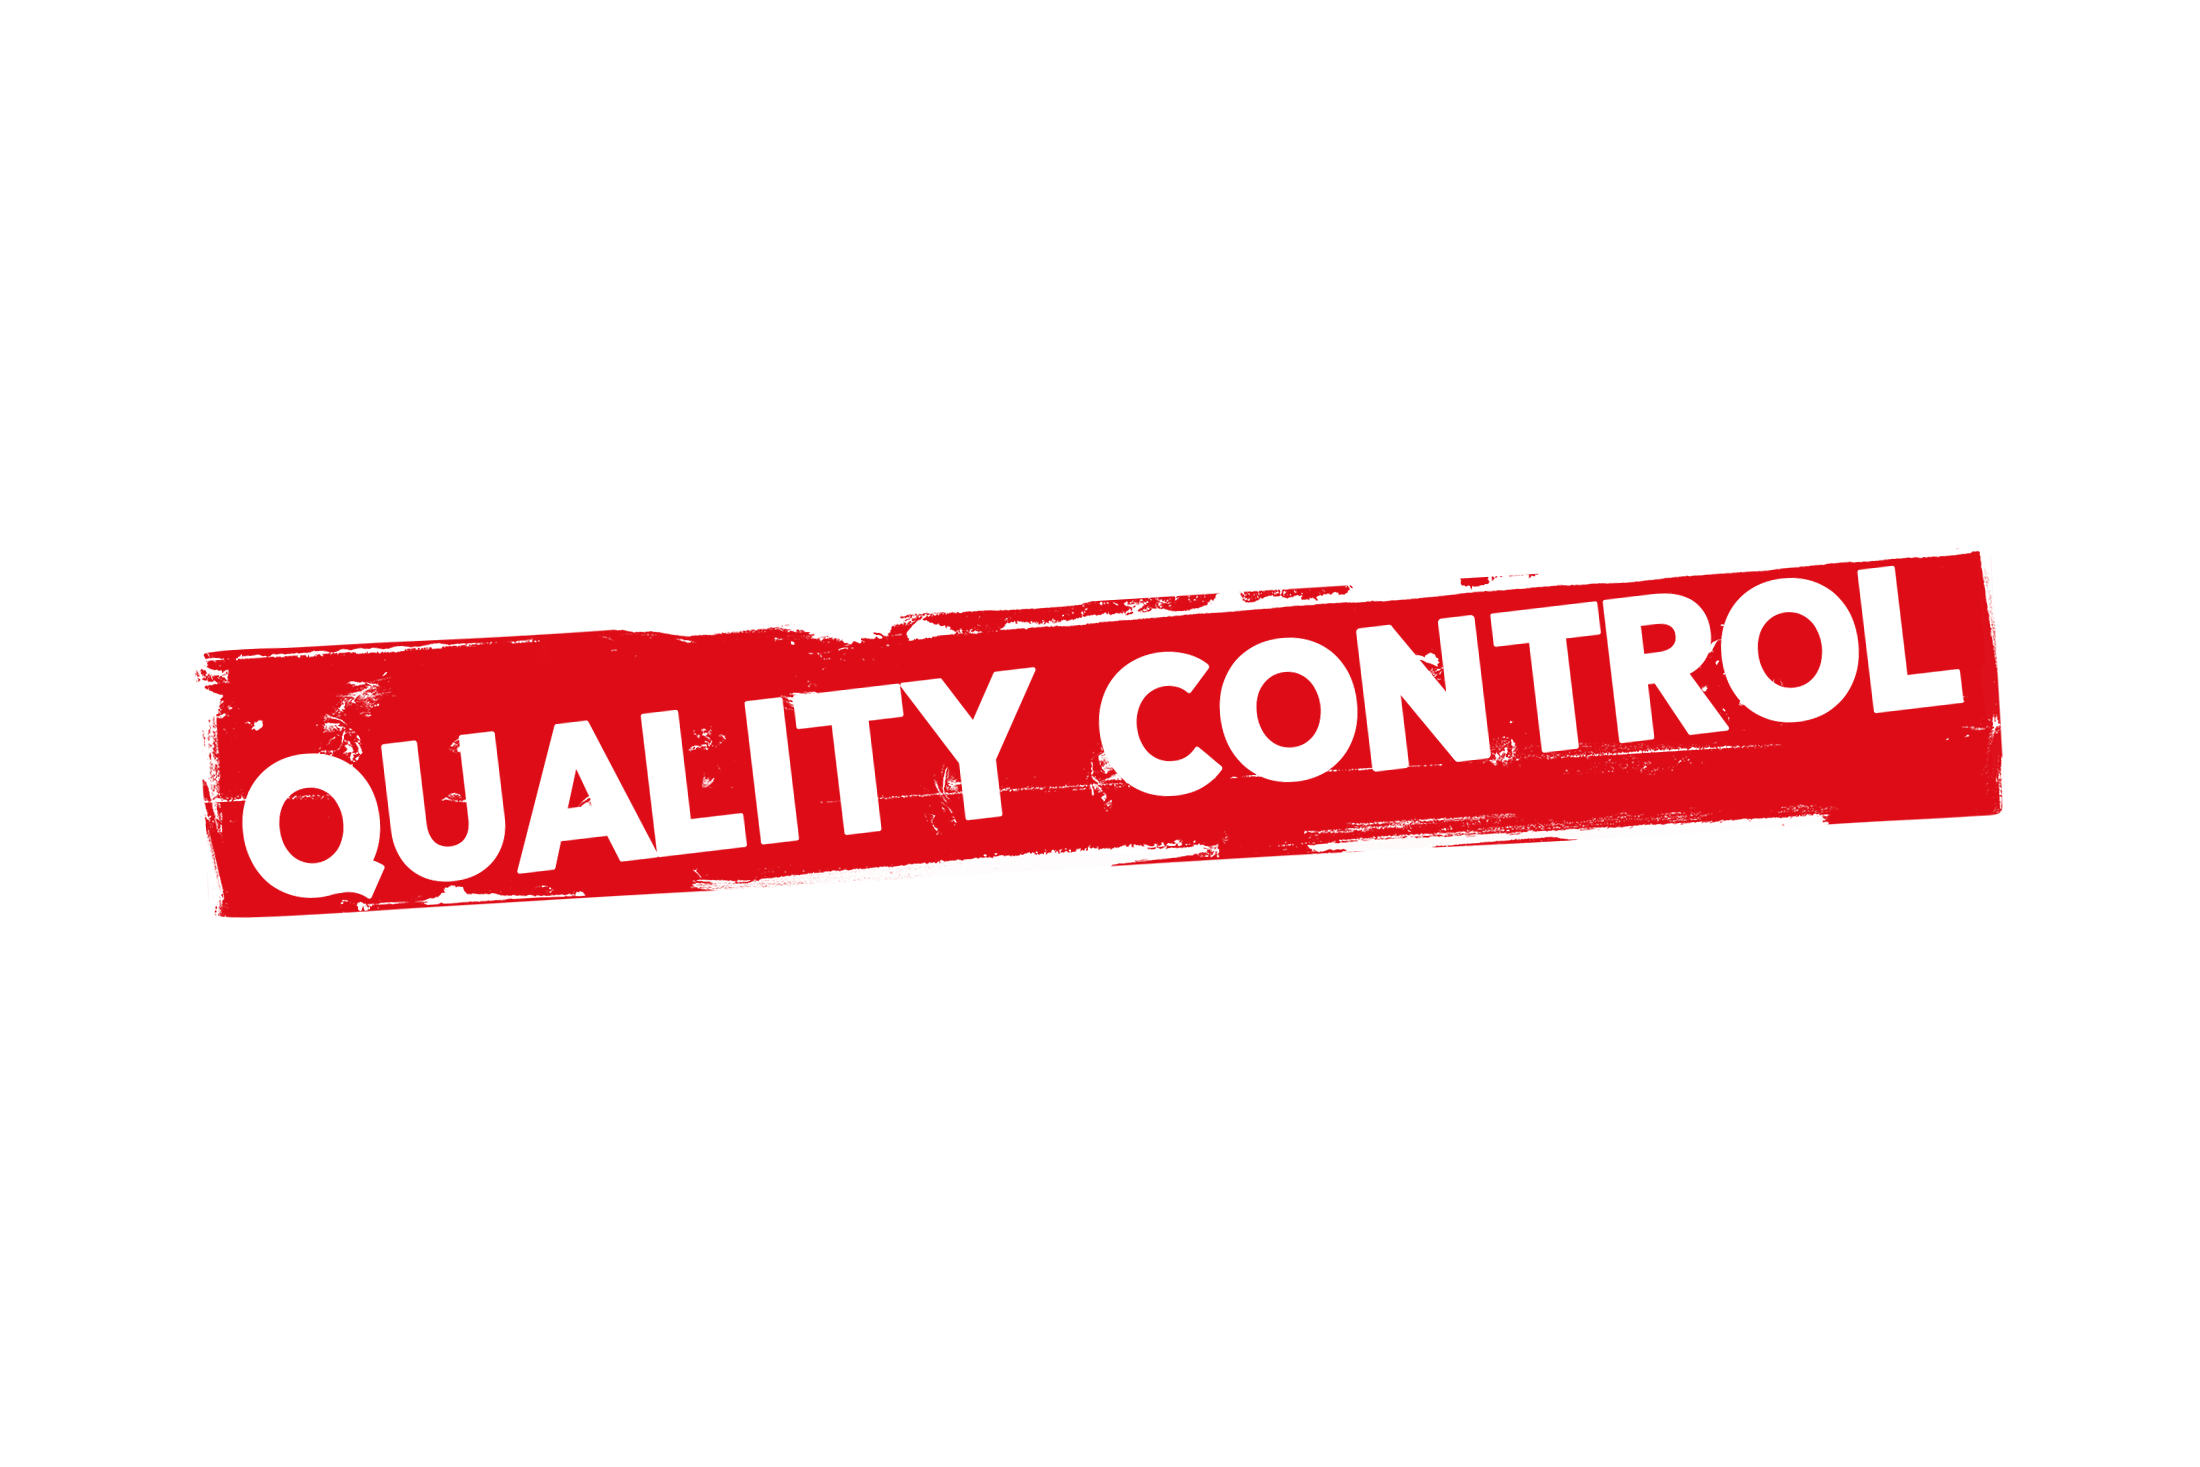 Grunge quality control label PSD